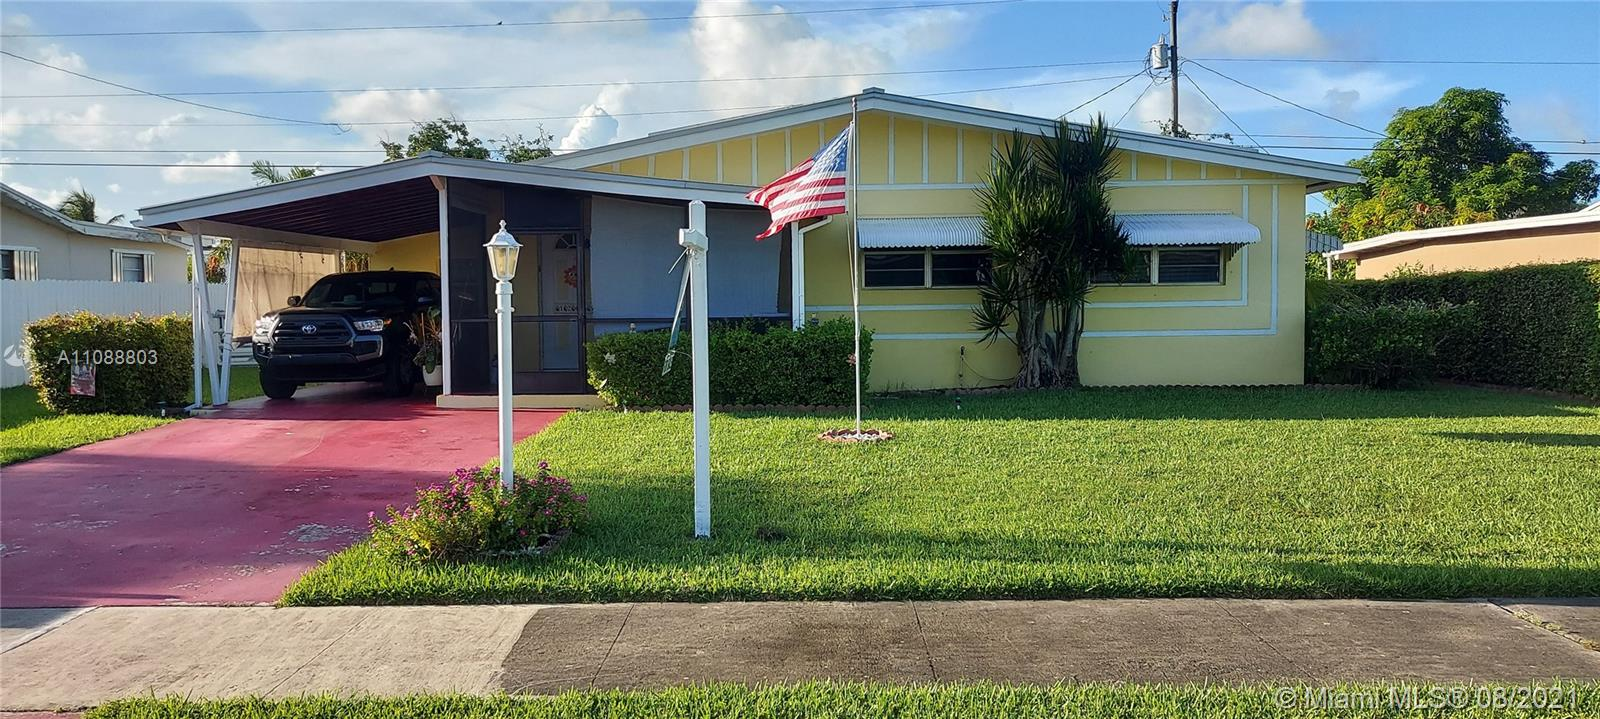 3/1 COZY HOME WITH LOTS OF POTENTIAL. SPACIOUS BACK YARD, WITH SIDE ACCESS, PERFECT FOR A BOAT OR TRAILER. METAL ROOF, STAINLESS STEAL APPLIANCES.